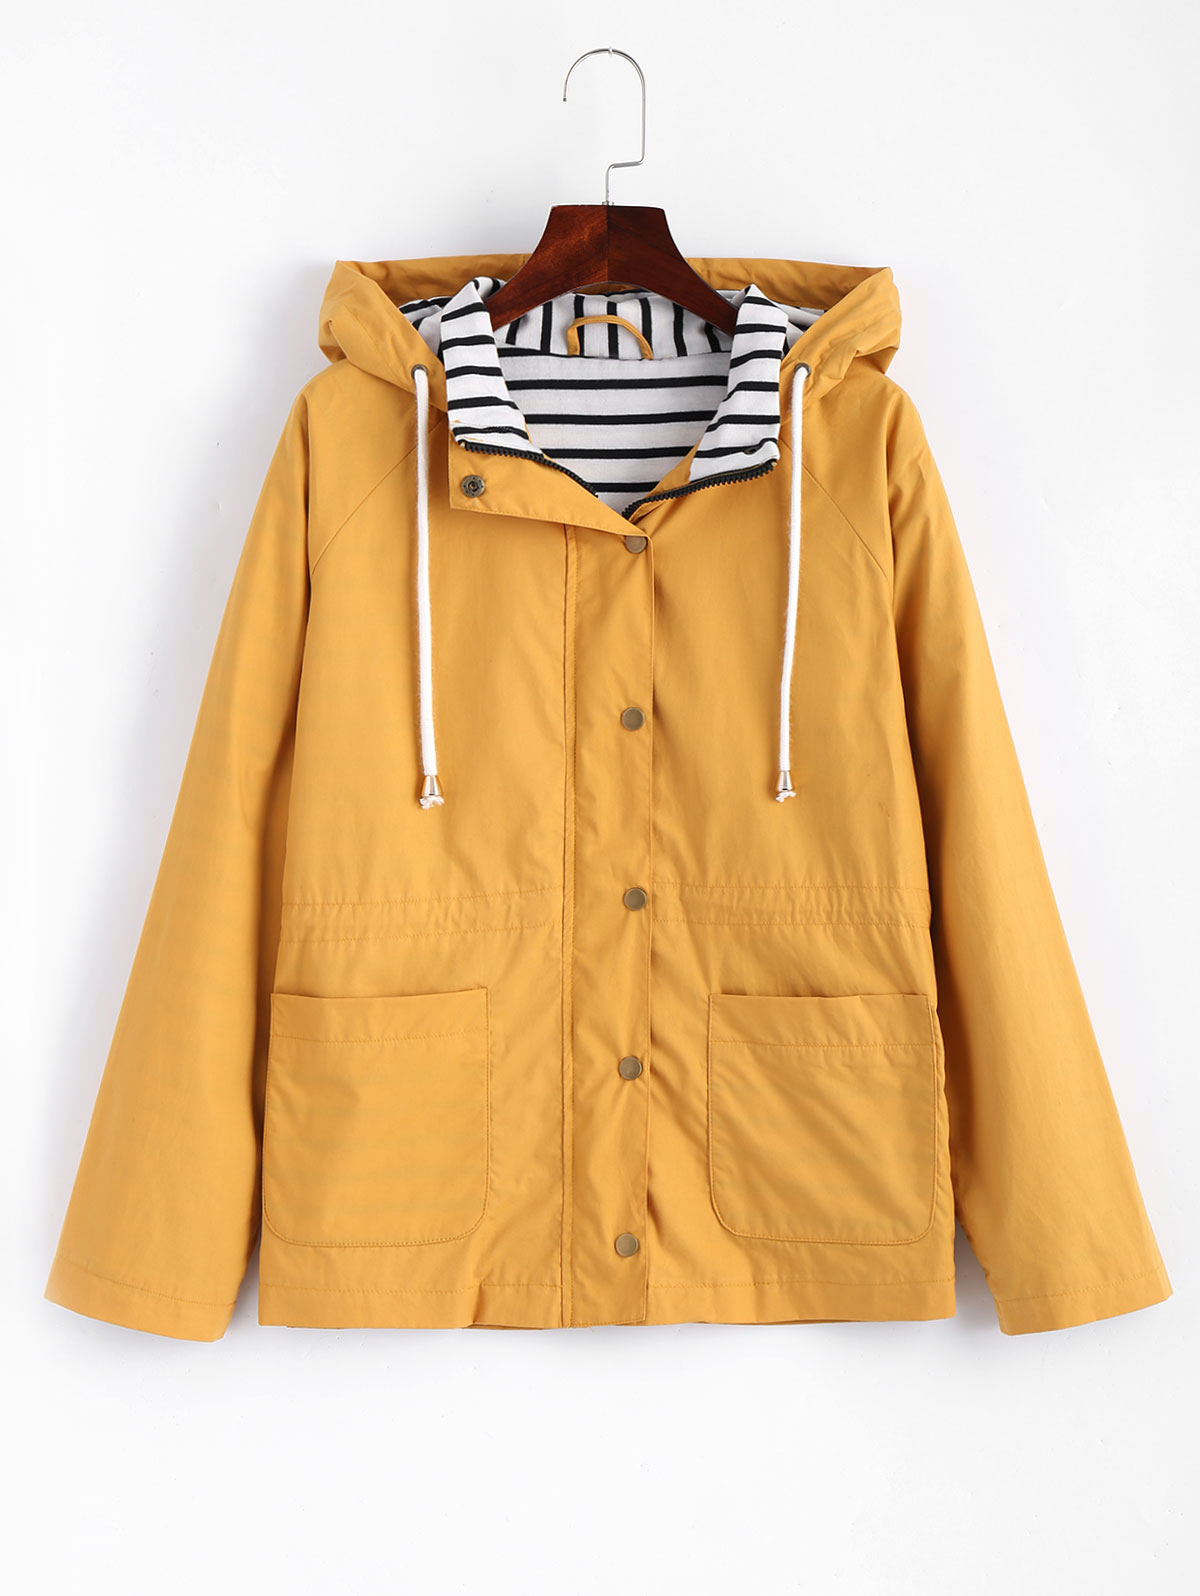 8476870cfcb78 This mustard jacket features a zip up front with snap button closure and  two big pockets